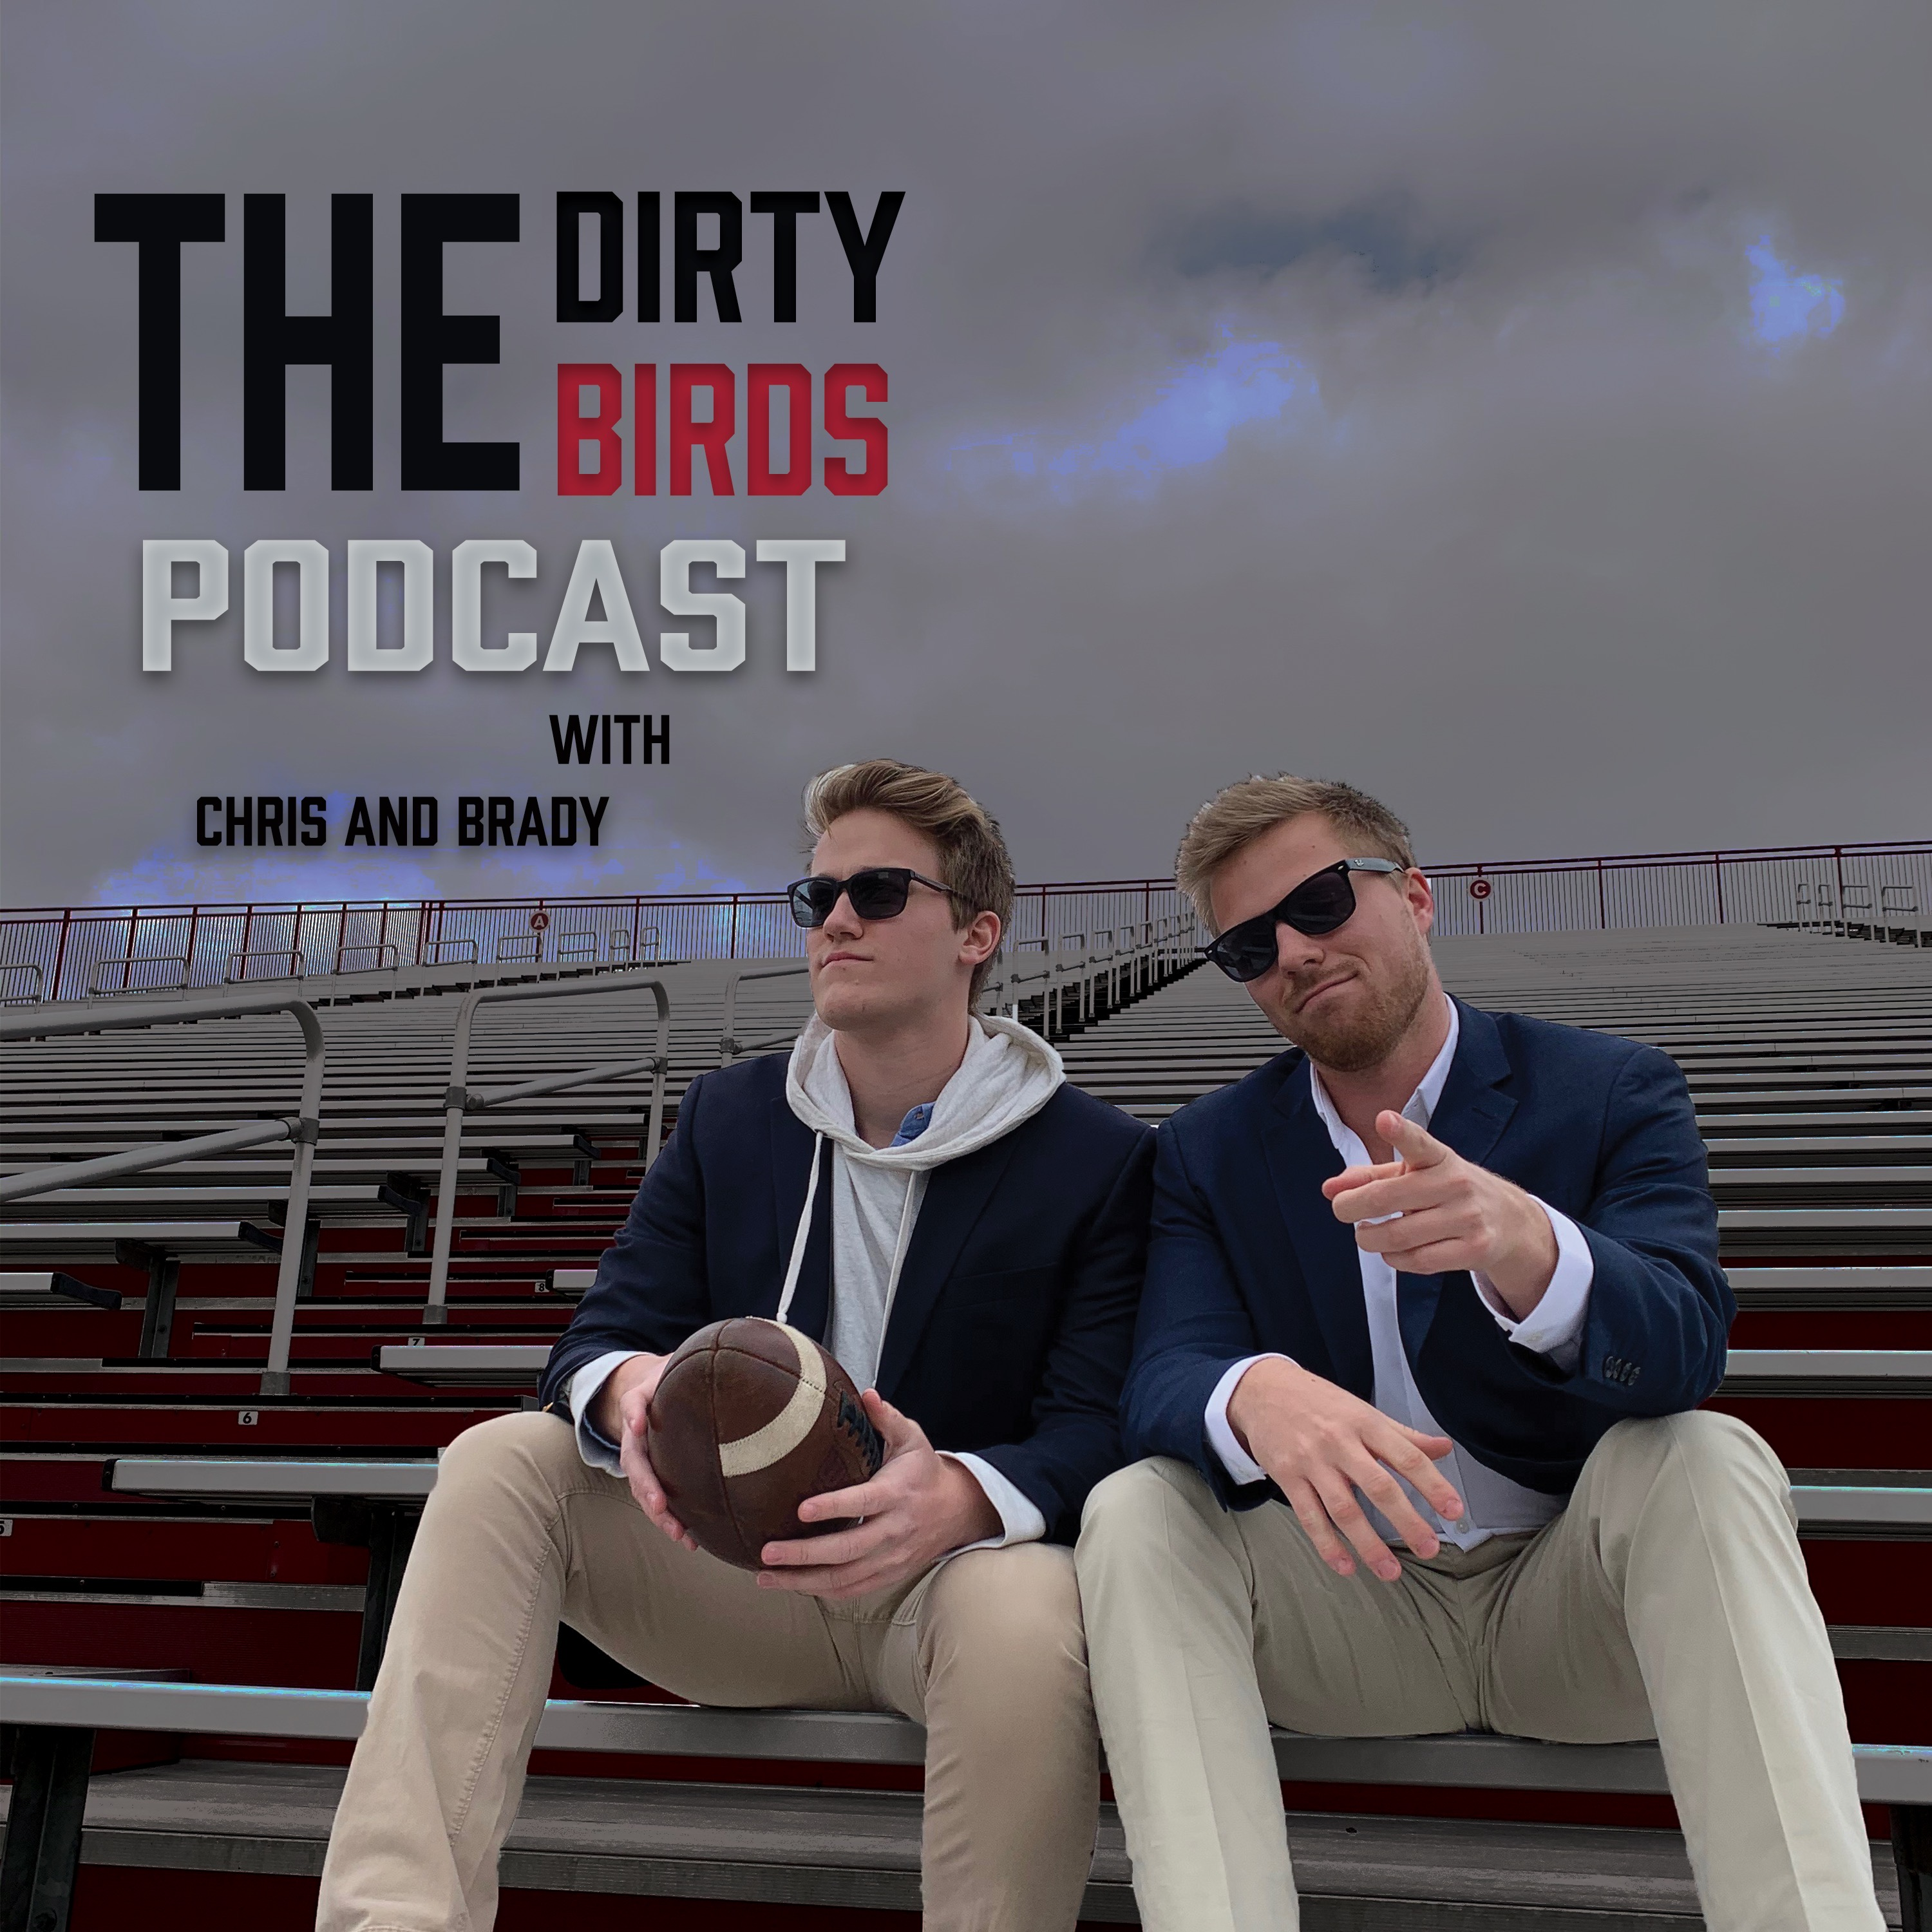 Dirty Birds Podcast Episode 8: Antonio Brown said WHAT?